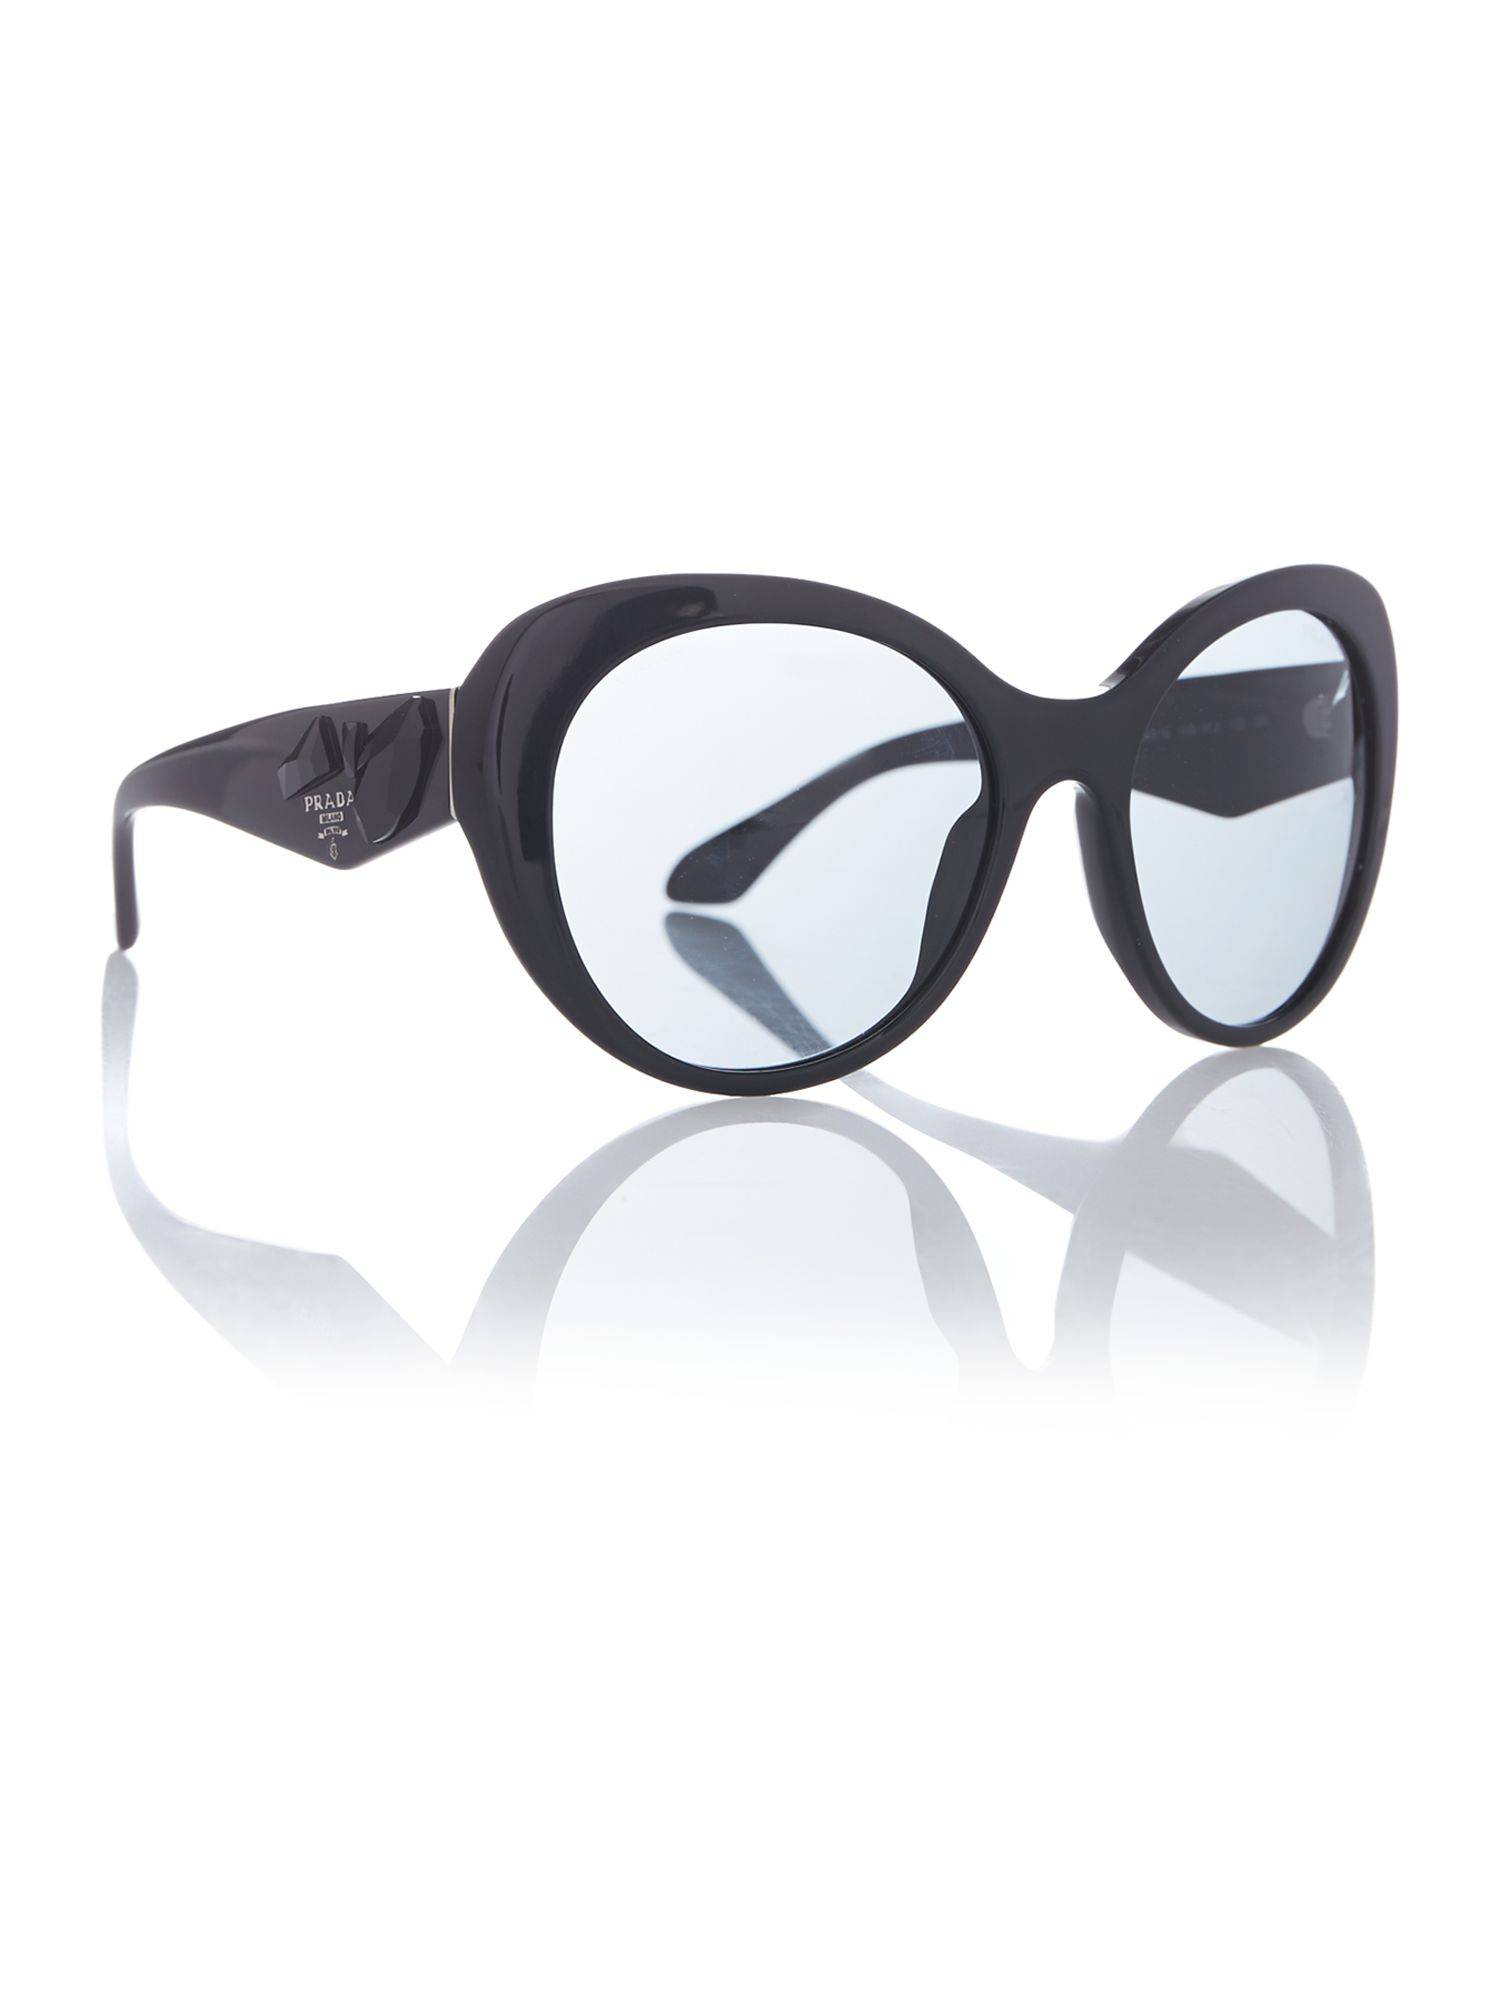 Prada Sunglasses Butterfly Sunglasses